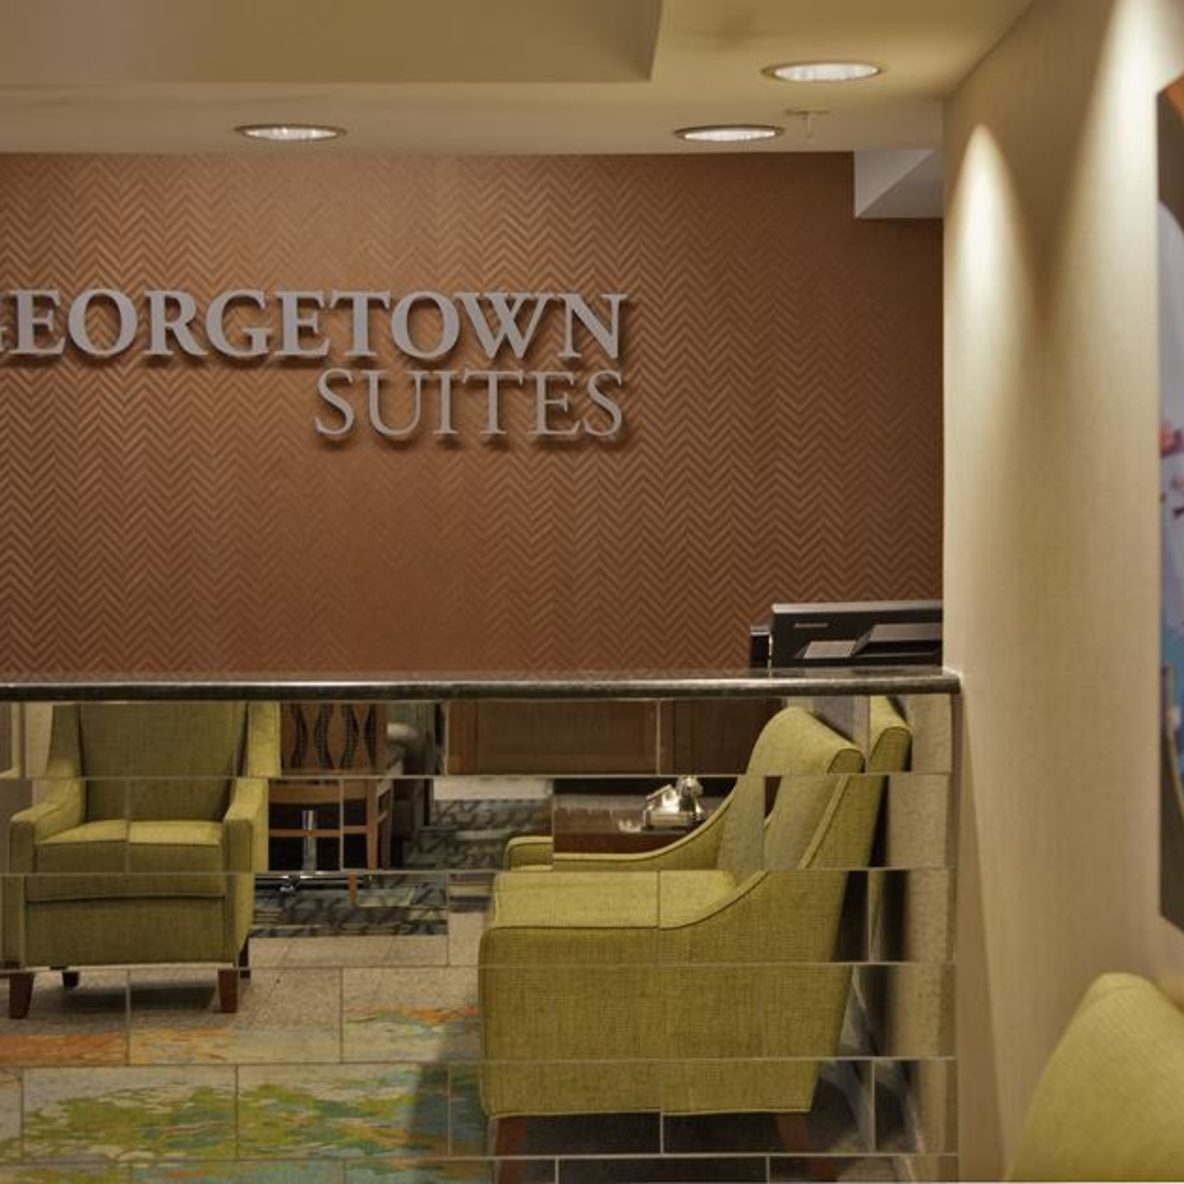 Georgetown Suites lobby seating